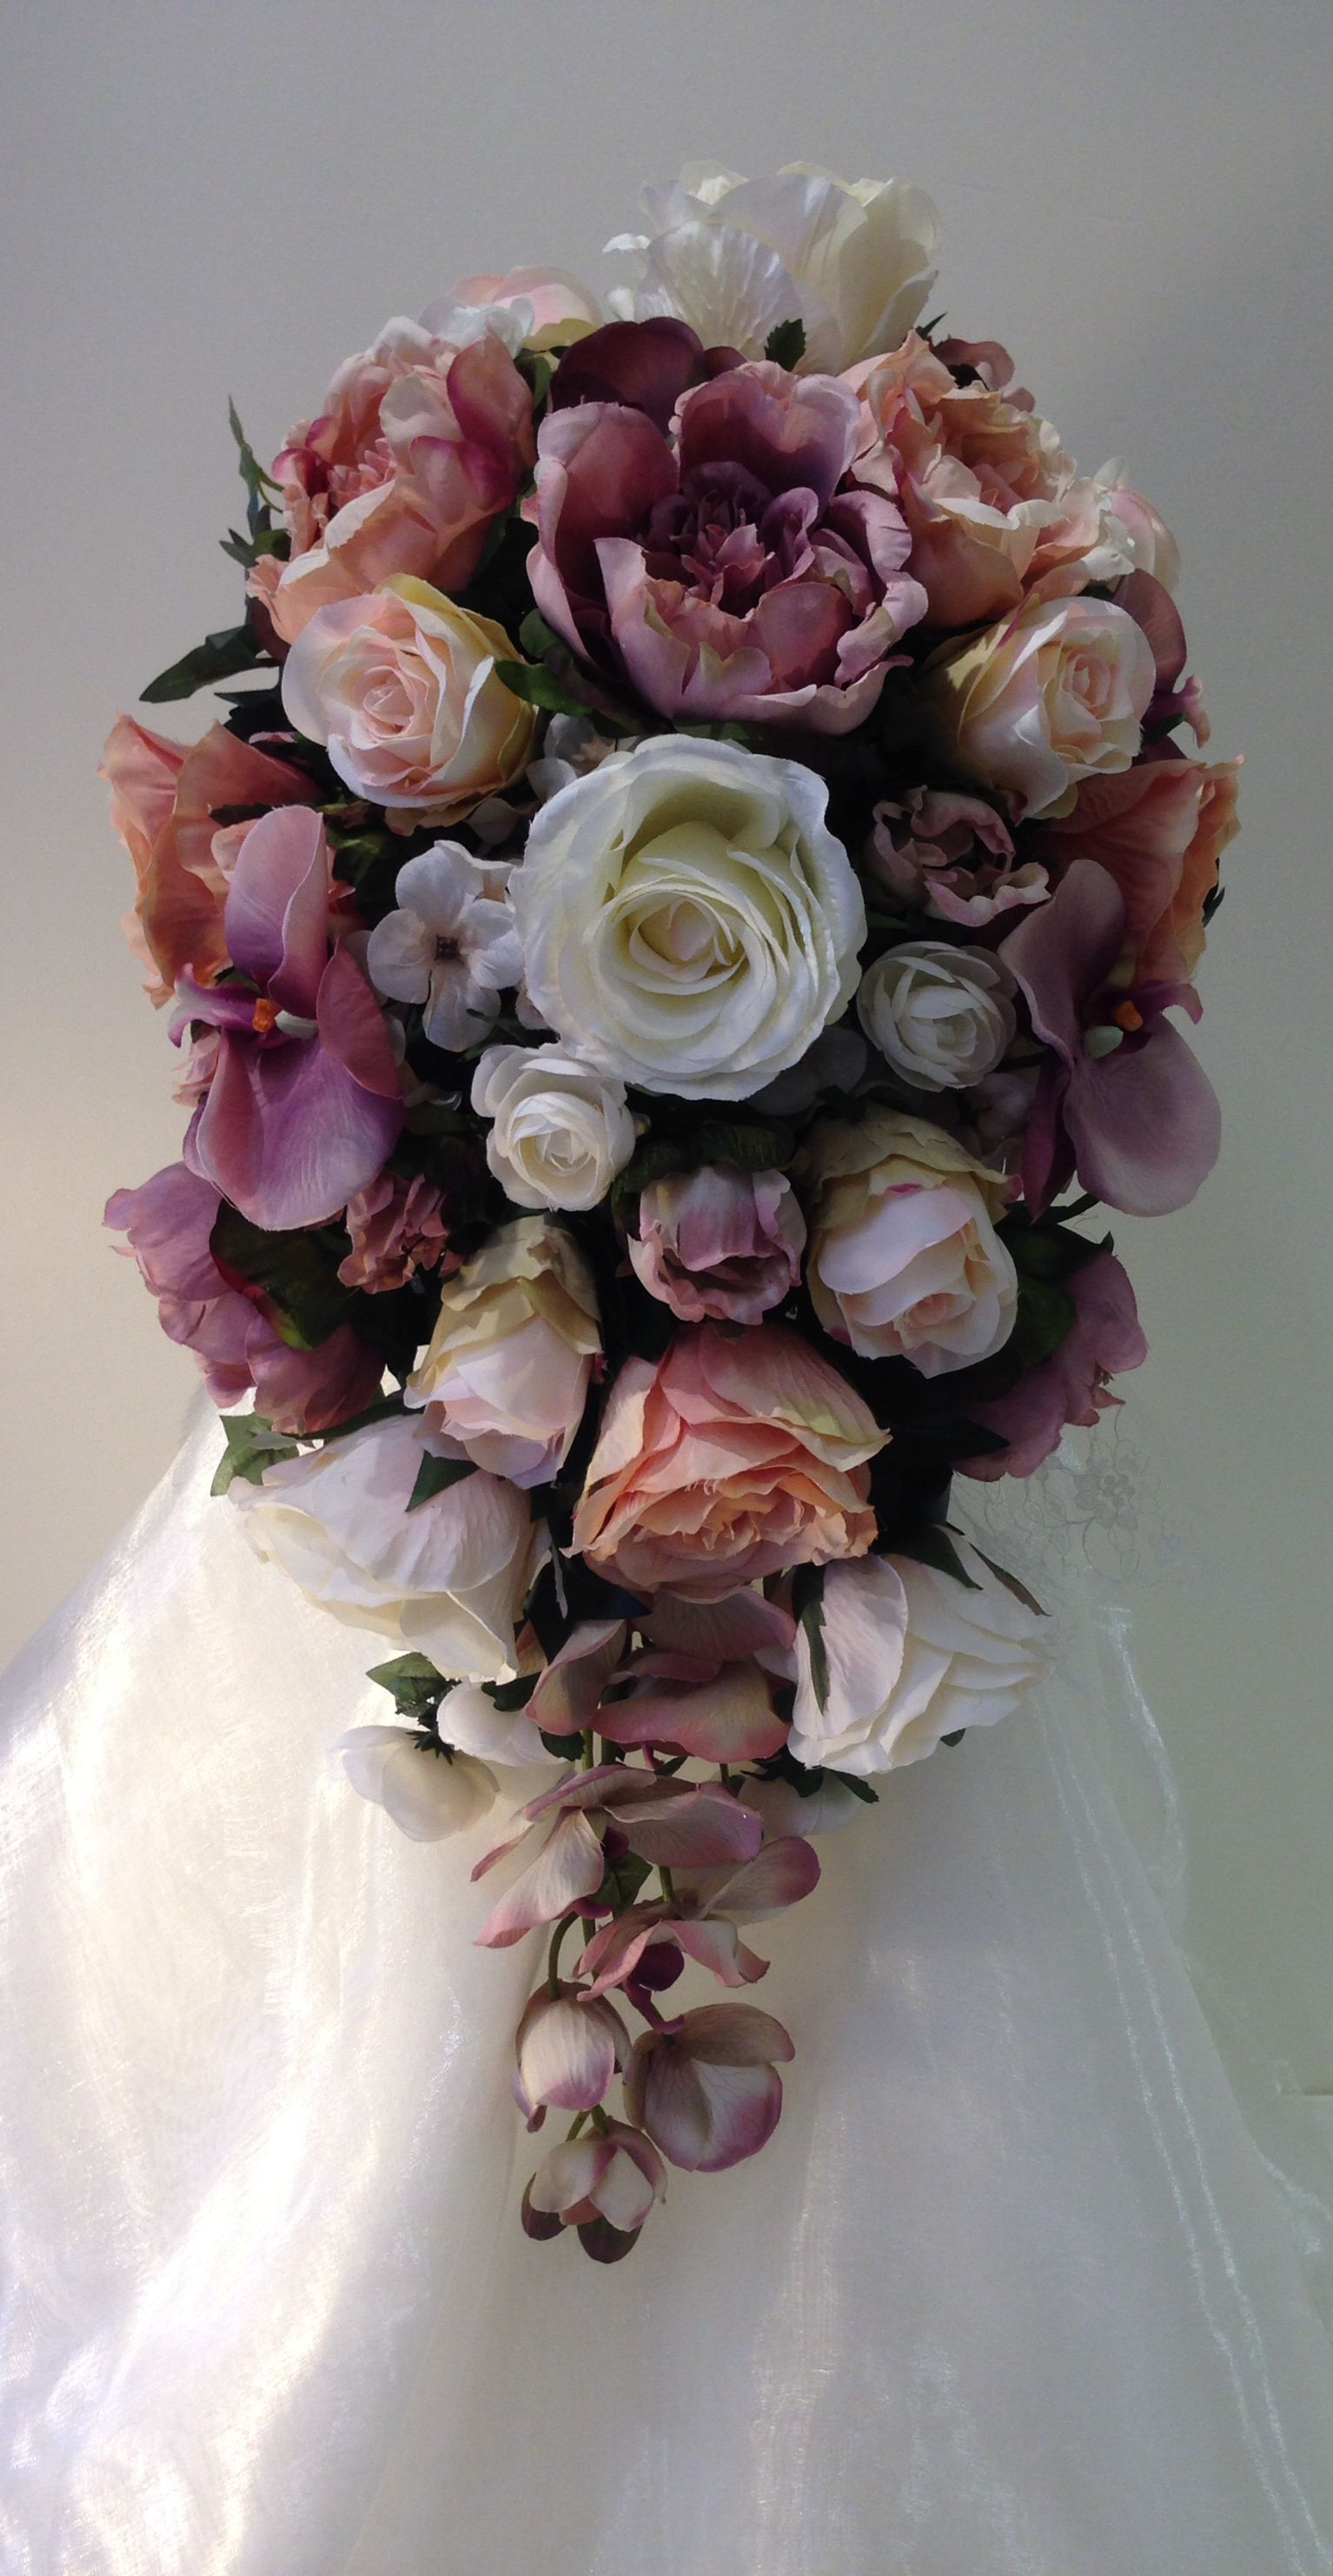 Dusky Peach Mauve Pink And Cream Bridal Bouquet In Everlasting